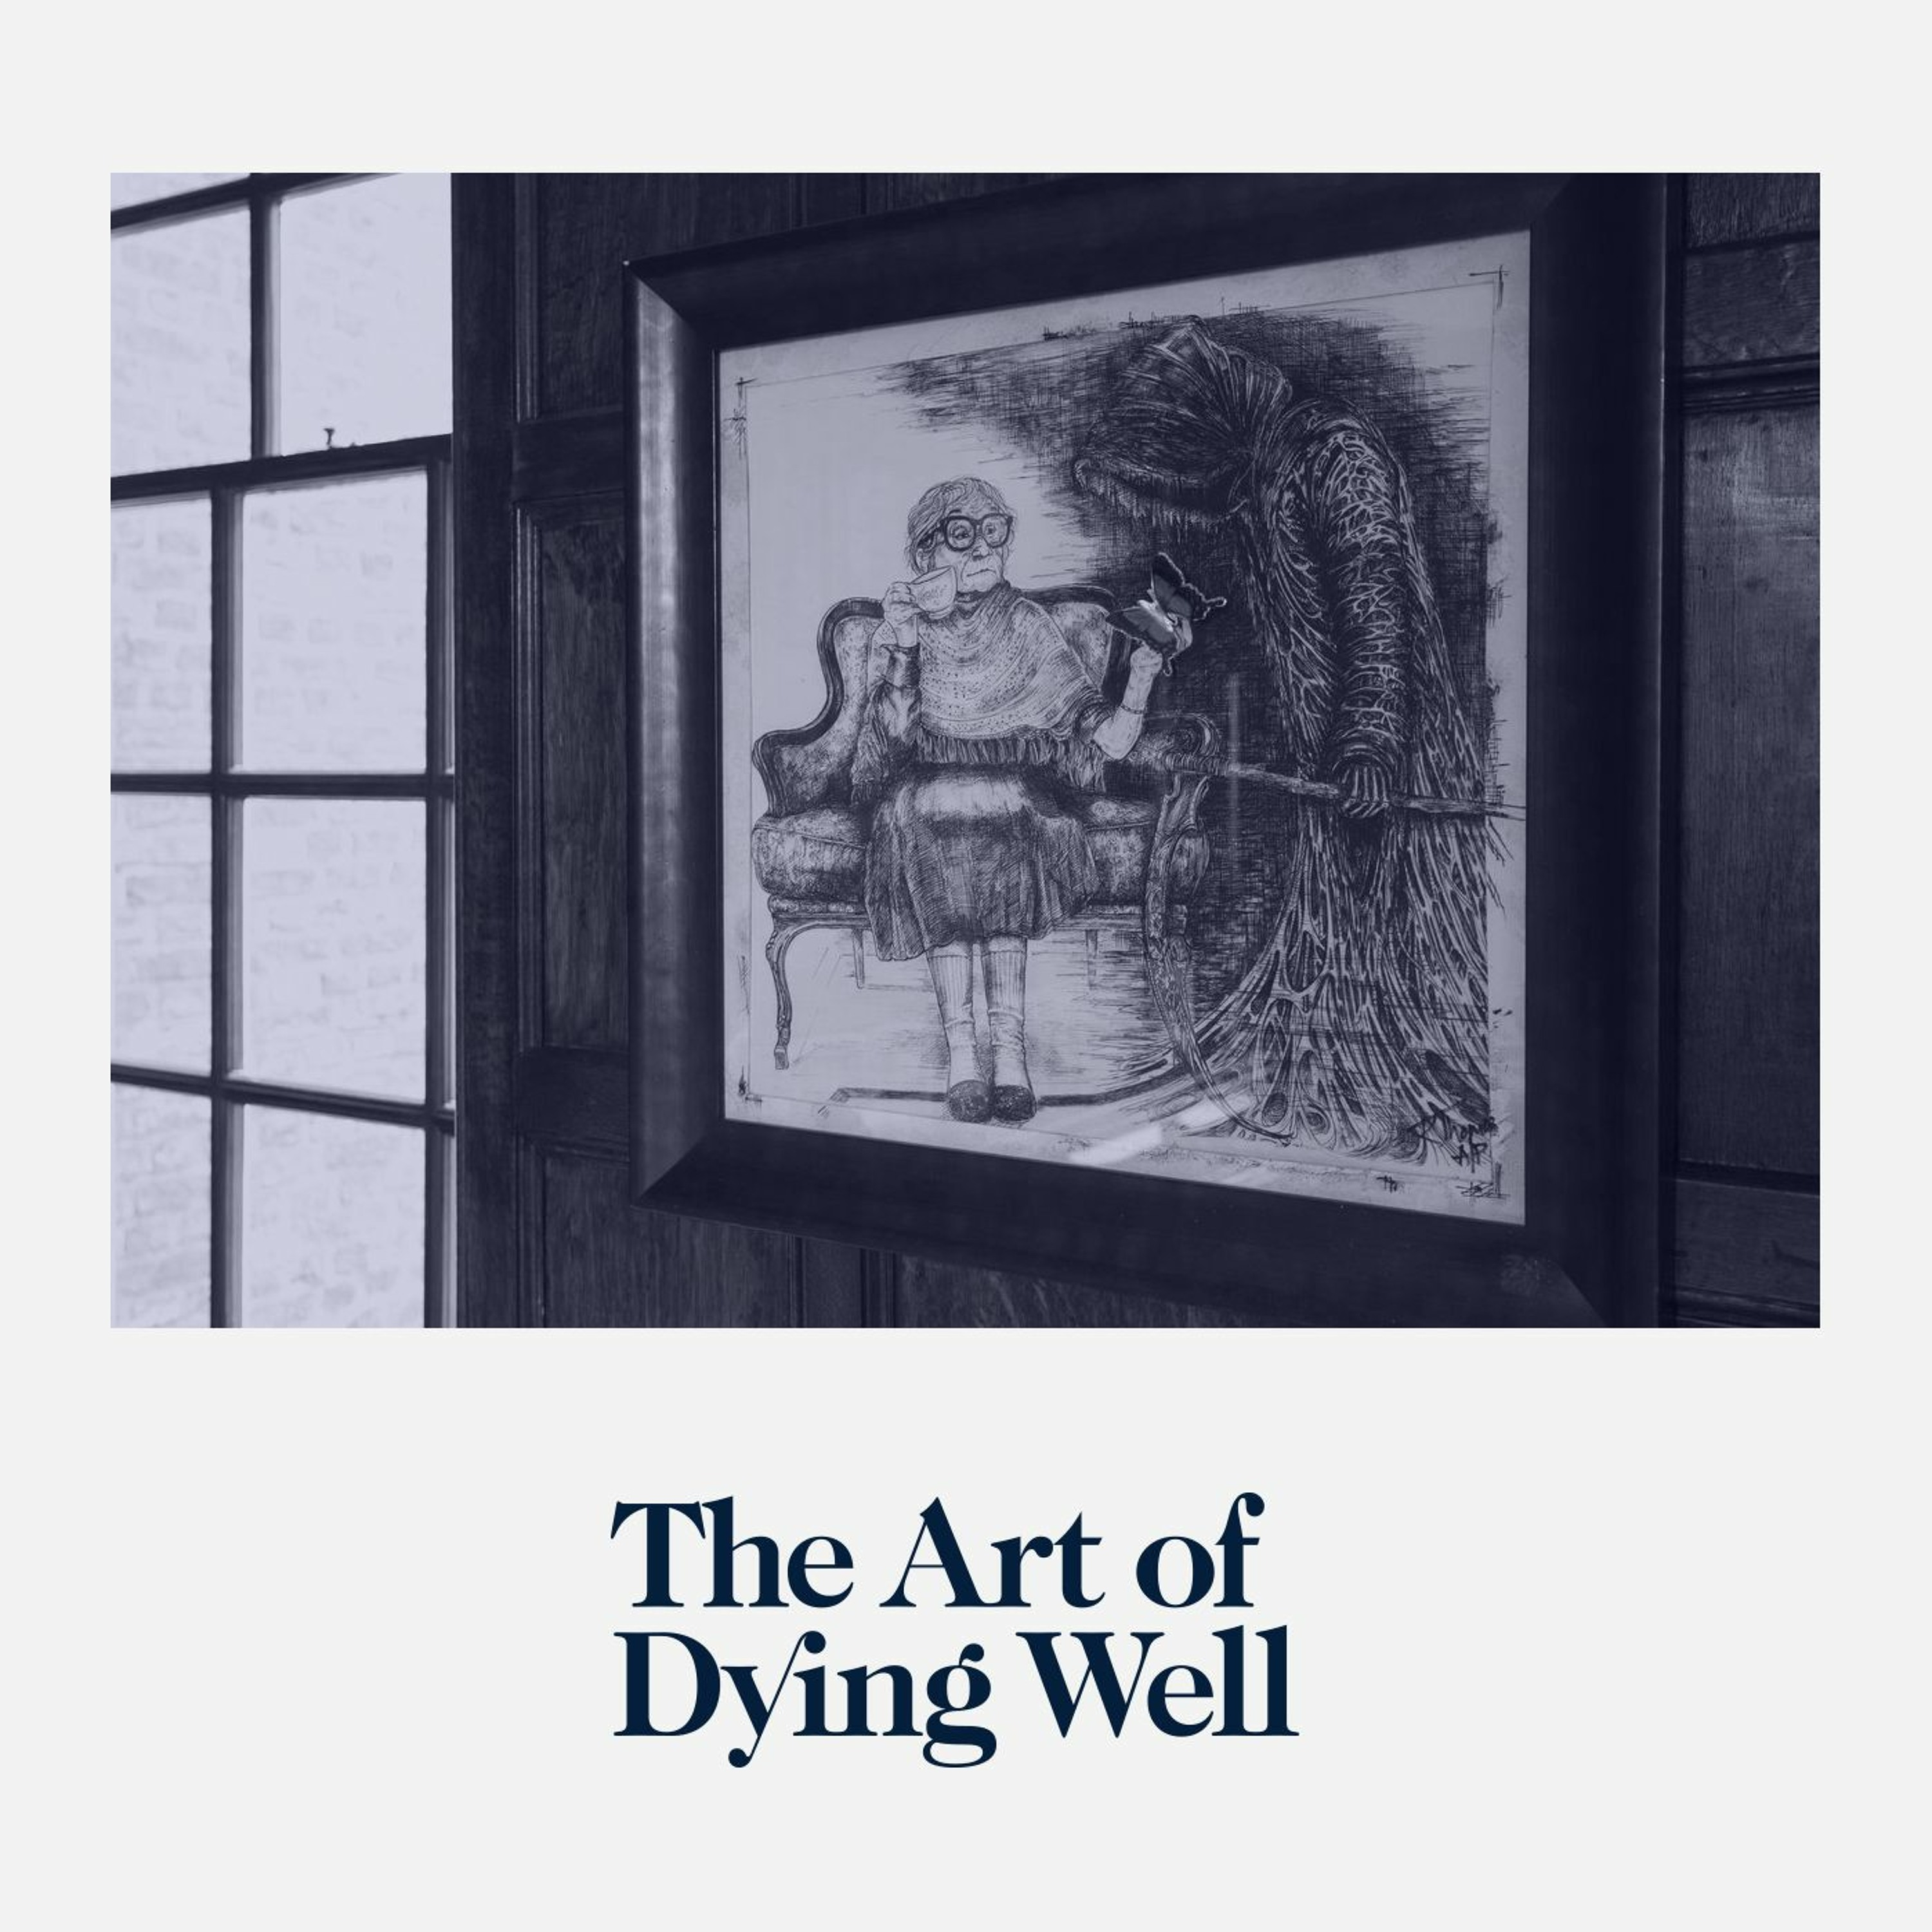 The art of dying well book